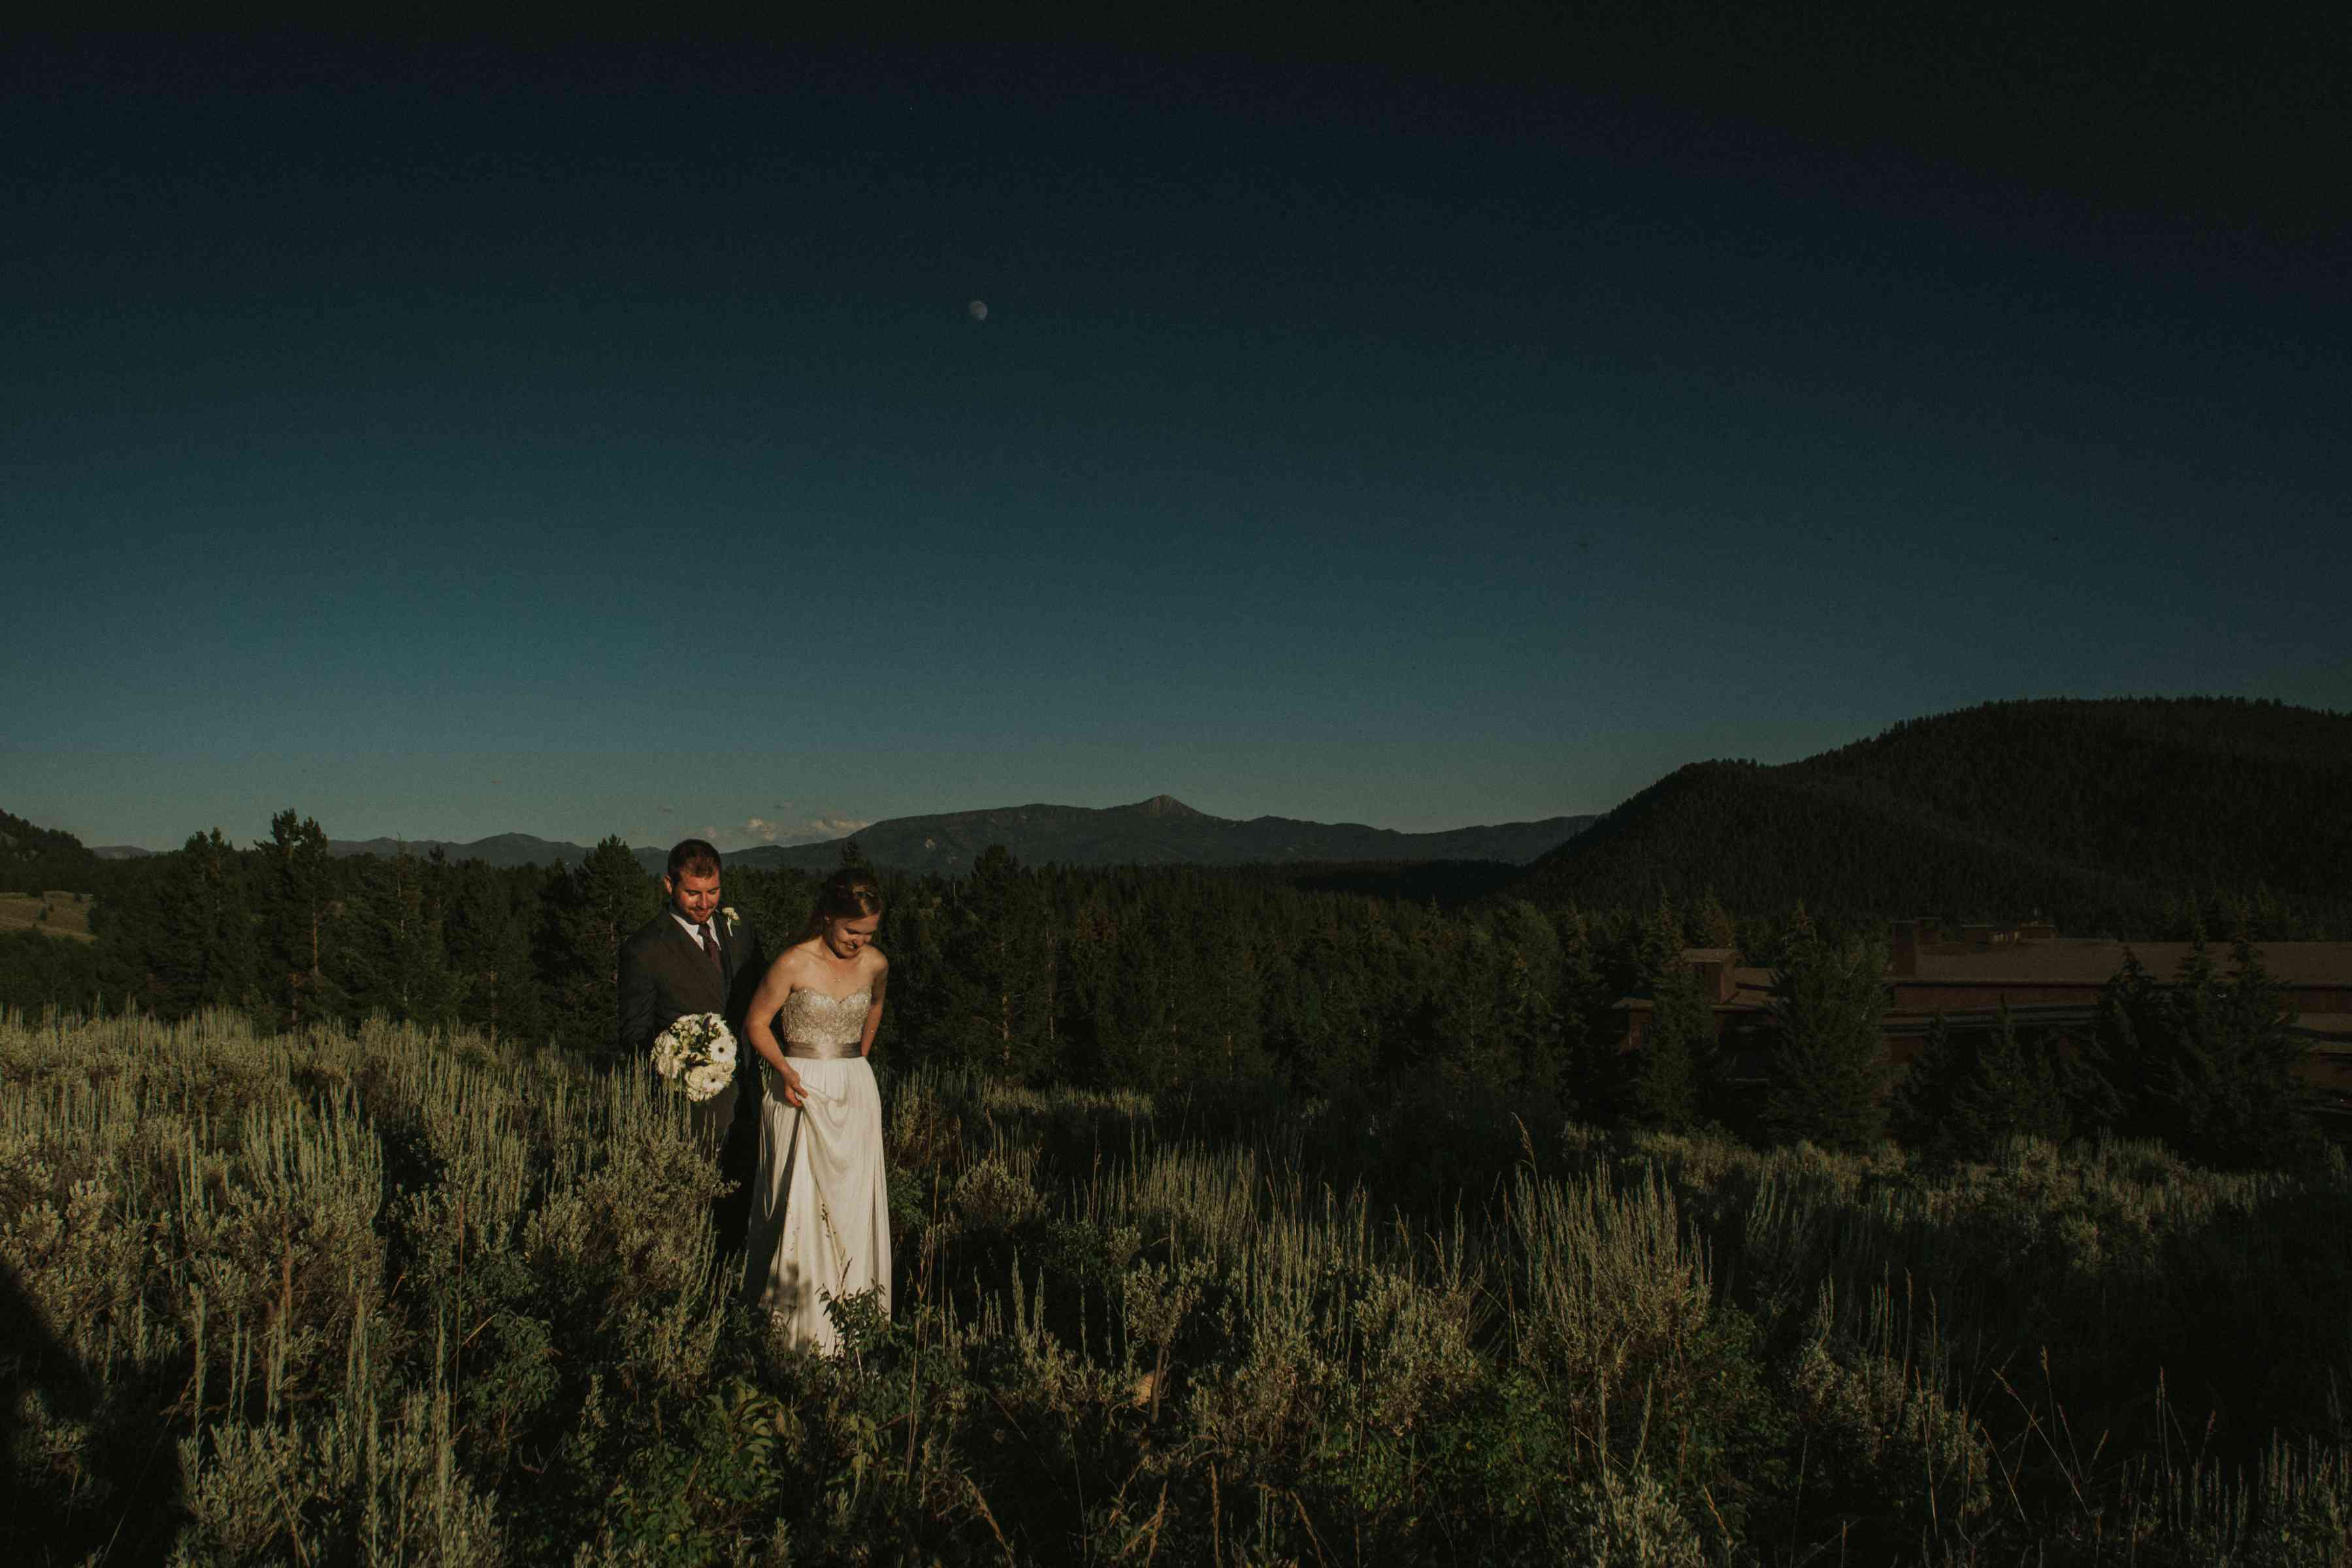 <p>Wedding photo at the Grand Tetons in Wyoming</p>